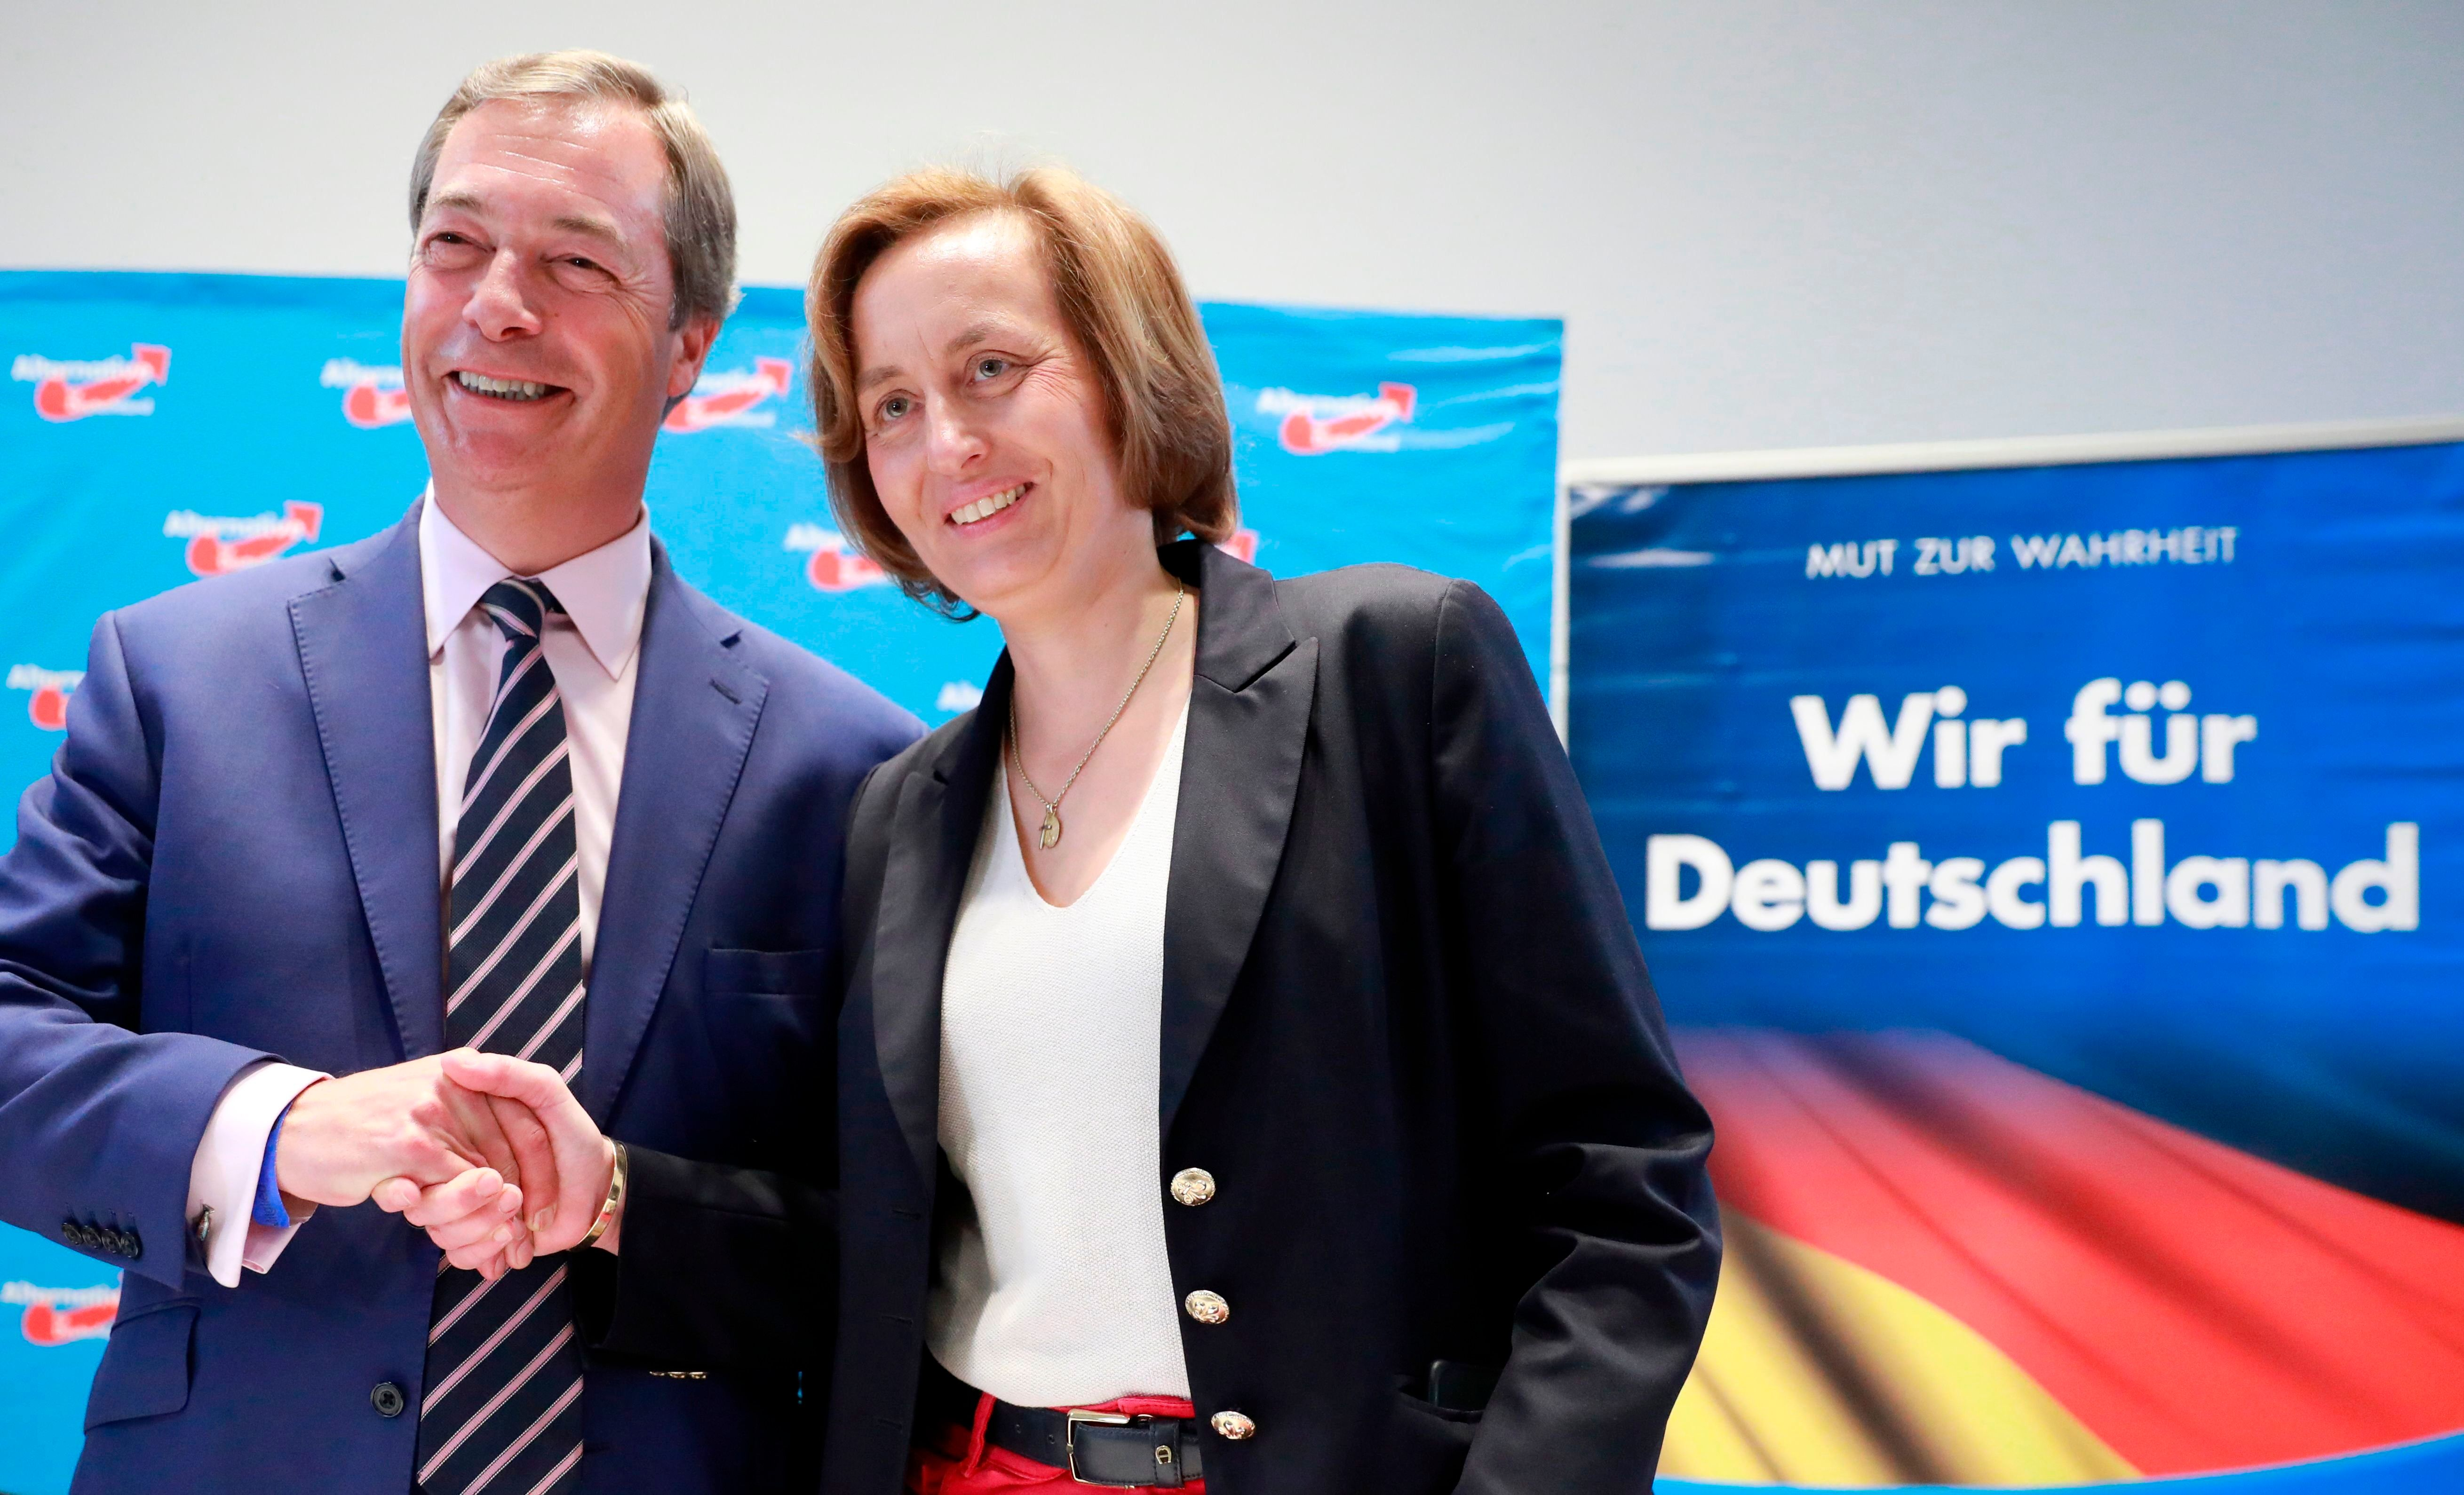 4 storylines to watch for in Germany's upcoming election